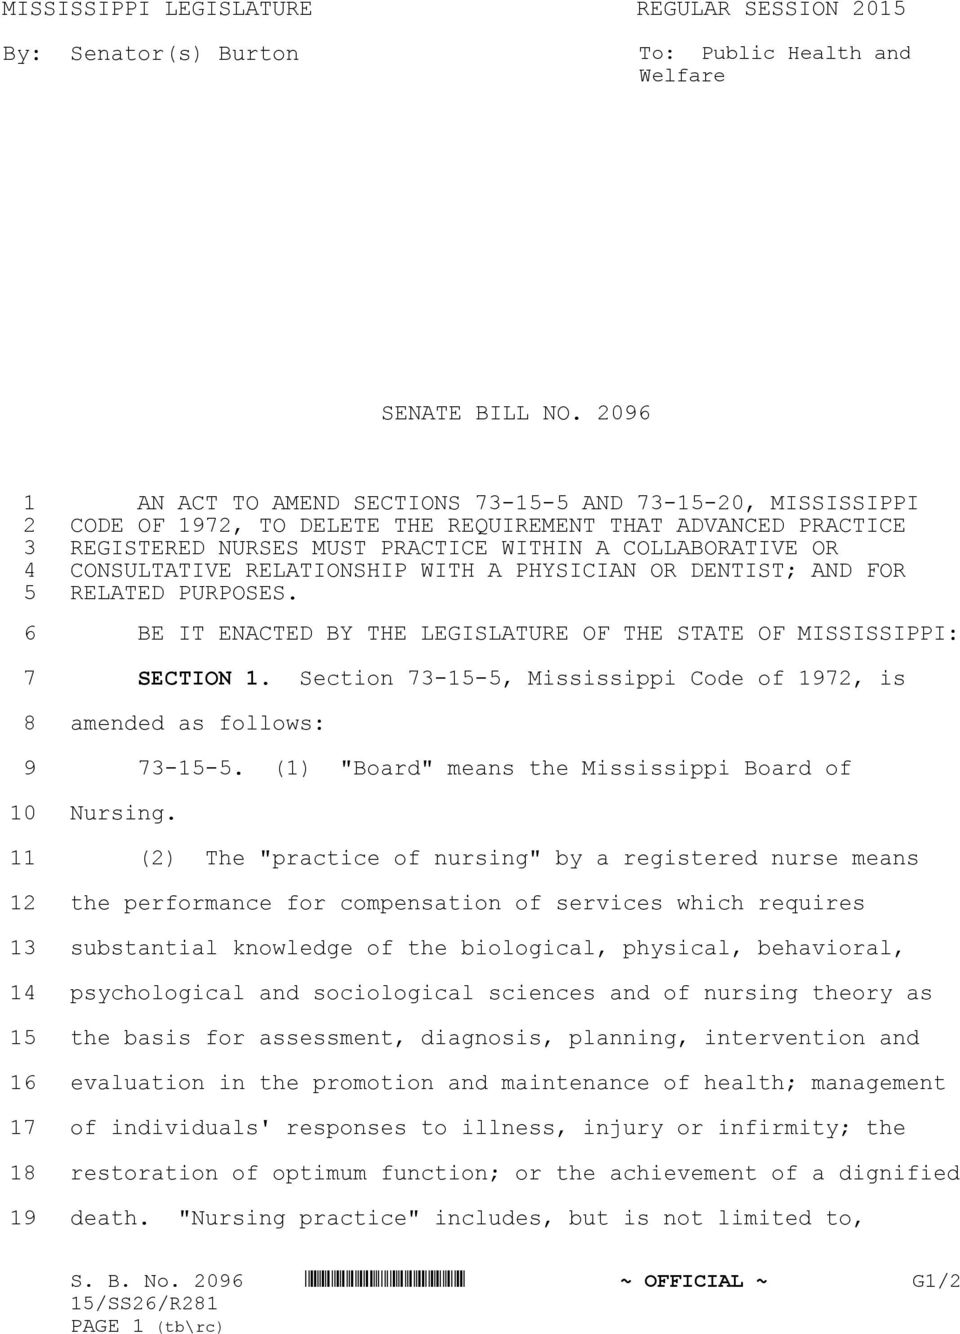 CONSULTATIVE RELATIONSHIP WITH A PHYSICIAN OR DENTIST; AND FOR 5 RELATED PURPOSES. 6 BE IT ENACTED BY THE LEGISLATURE OF THE STATE OF MISSISSIPPI: 7 8 9 10 11 12 13 14 15 16 17 18 19 SECTION 1.